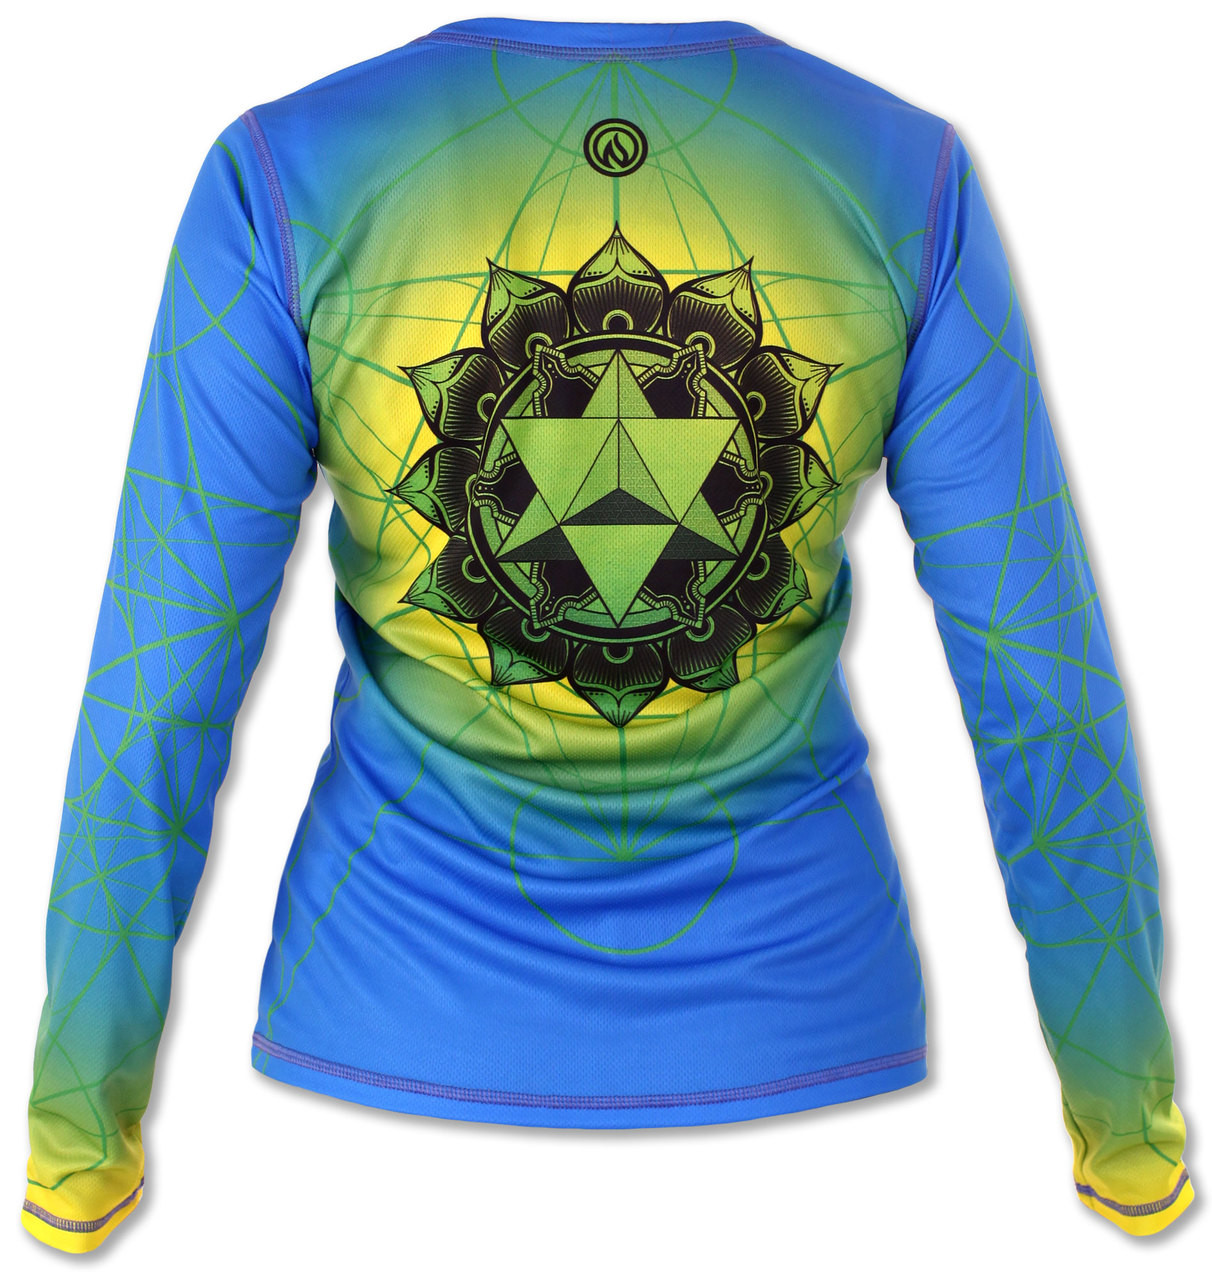 INKnBURN Women's Anahata Long Sleeve Tech Shirt Back